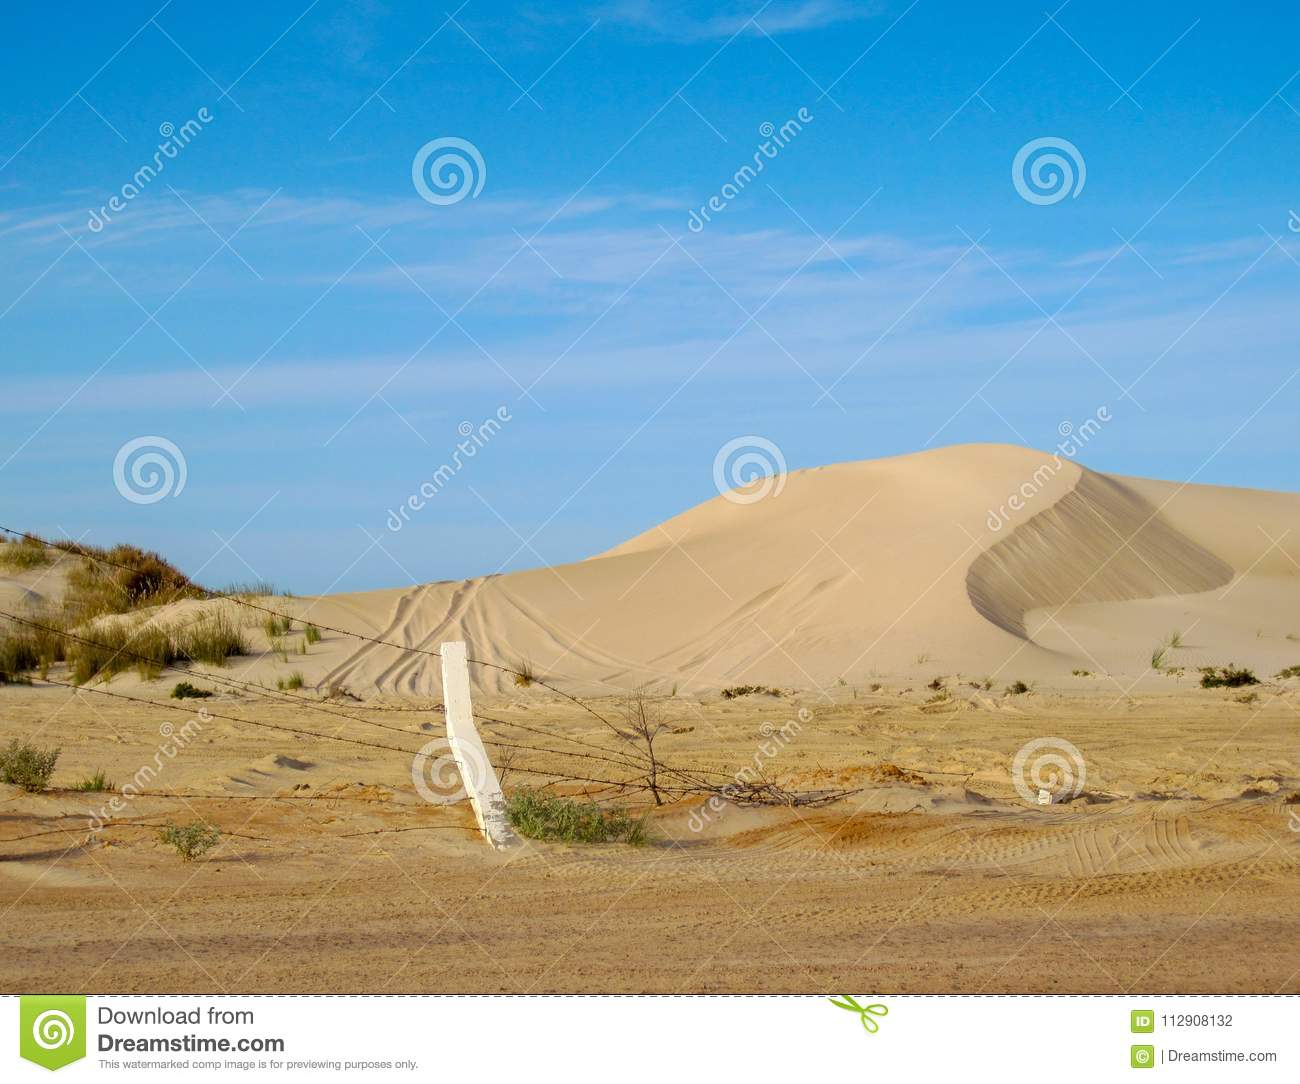 Coastal sand dunes of the Sahara Desert with tire tracks and barbed wire fence against blue sky